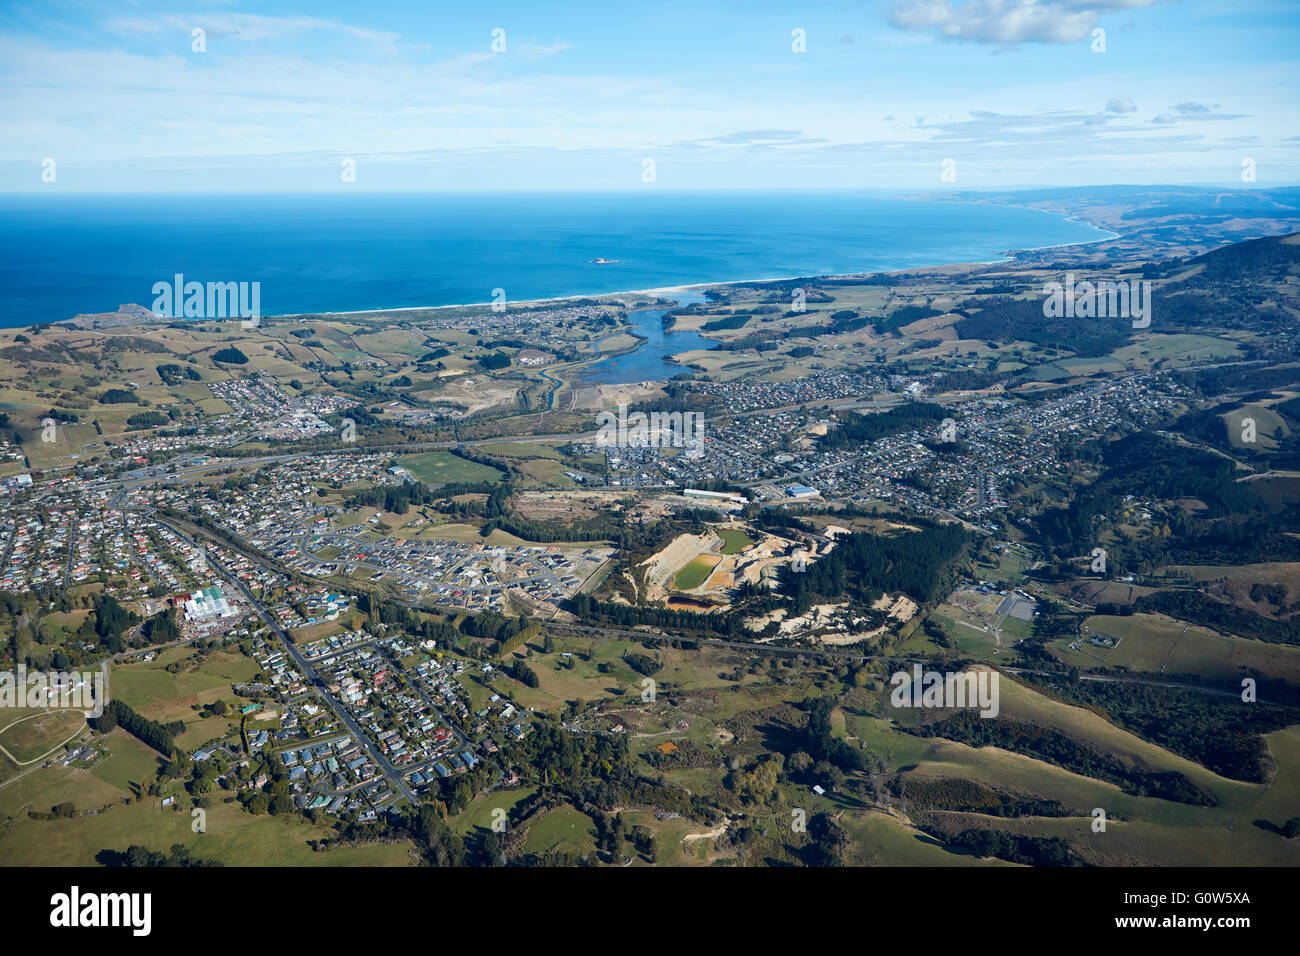 Suburbs of Abbotsford, Green Island and Fairfield, Dunedin, Otago, South Island, New Zealand - aerial - Stock Image